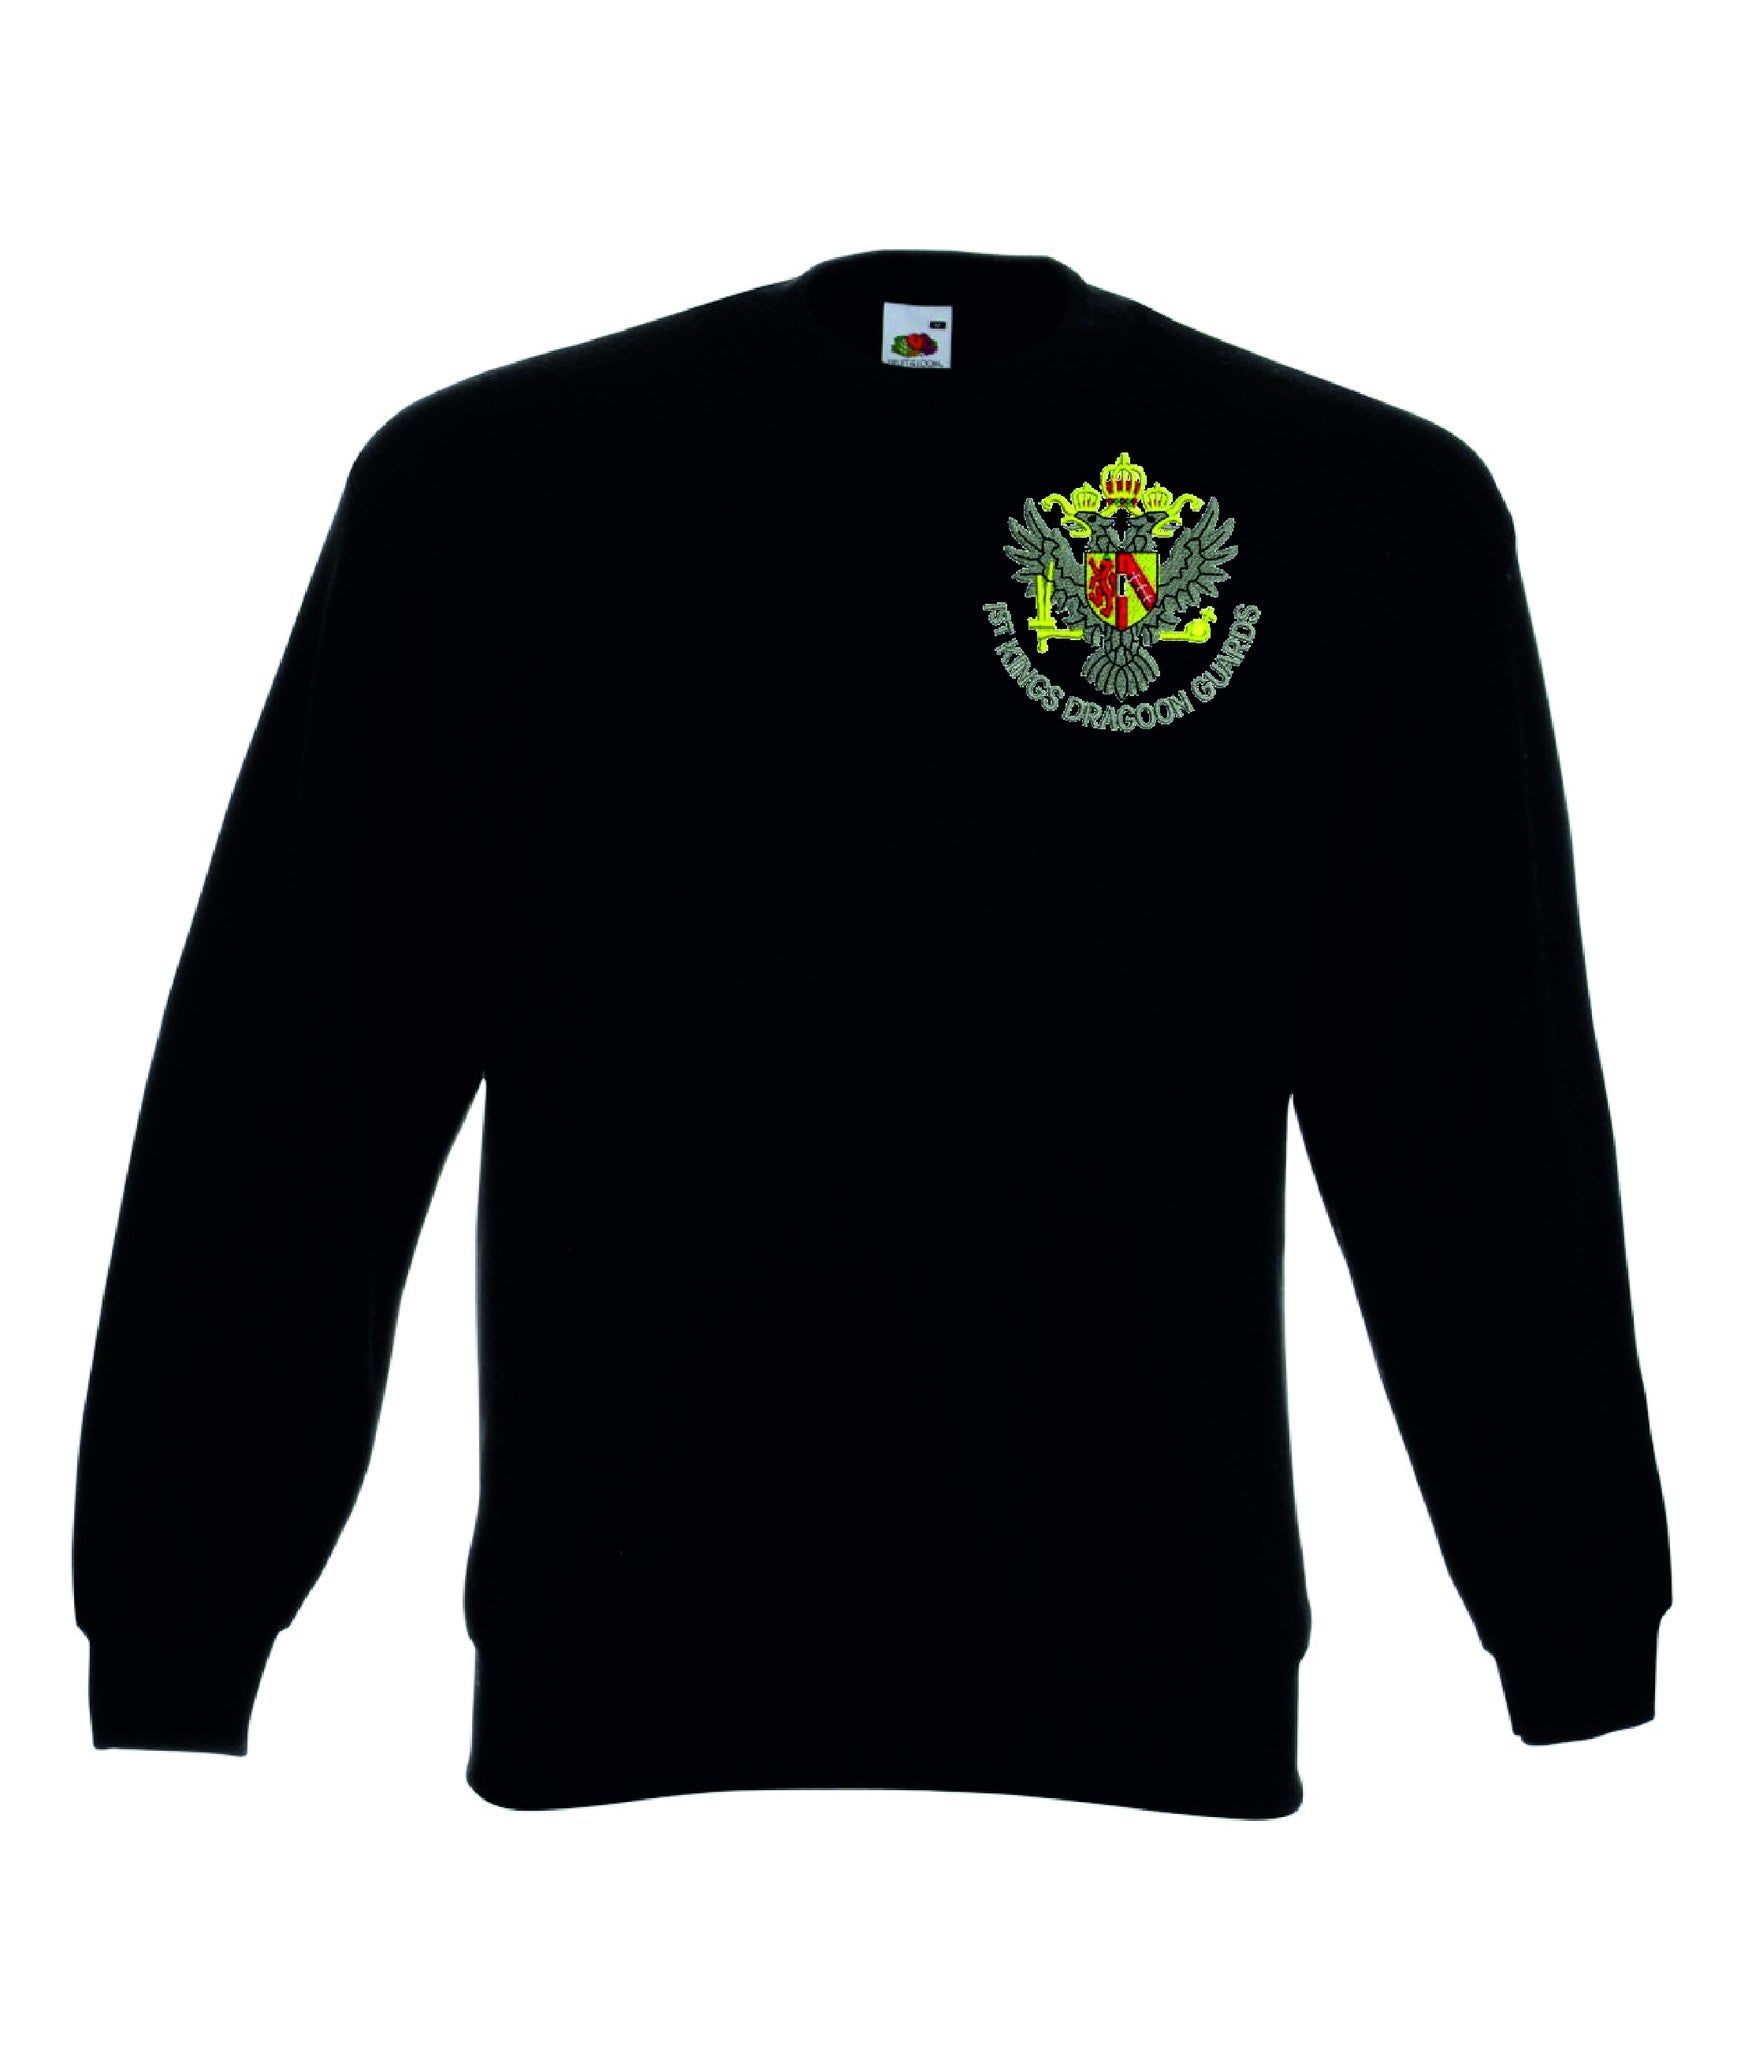 1st Queen's Dragoon Guards Sweatshirt